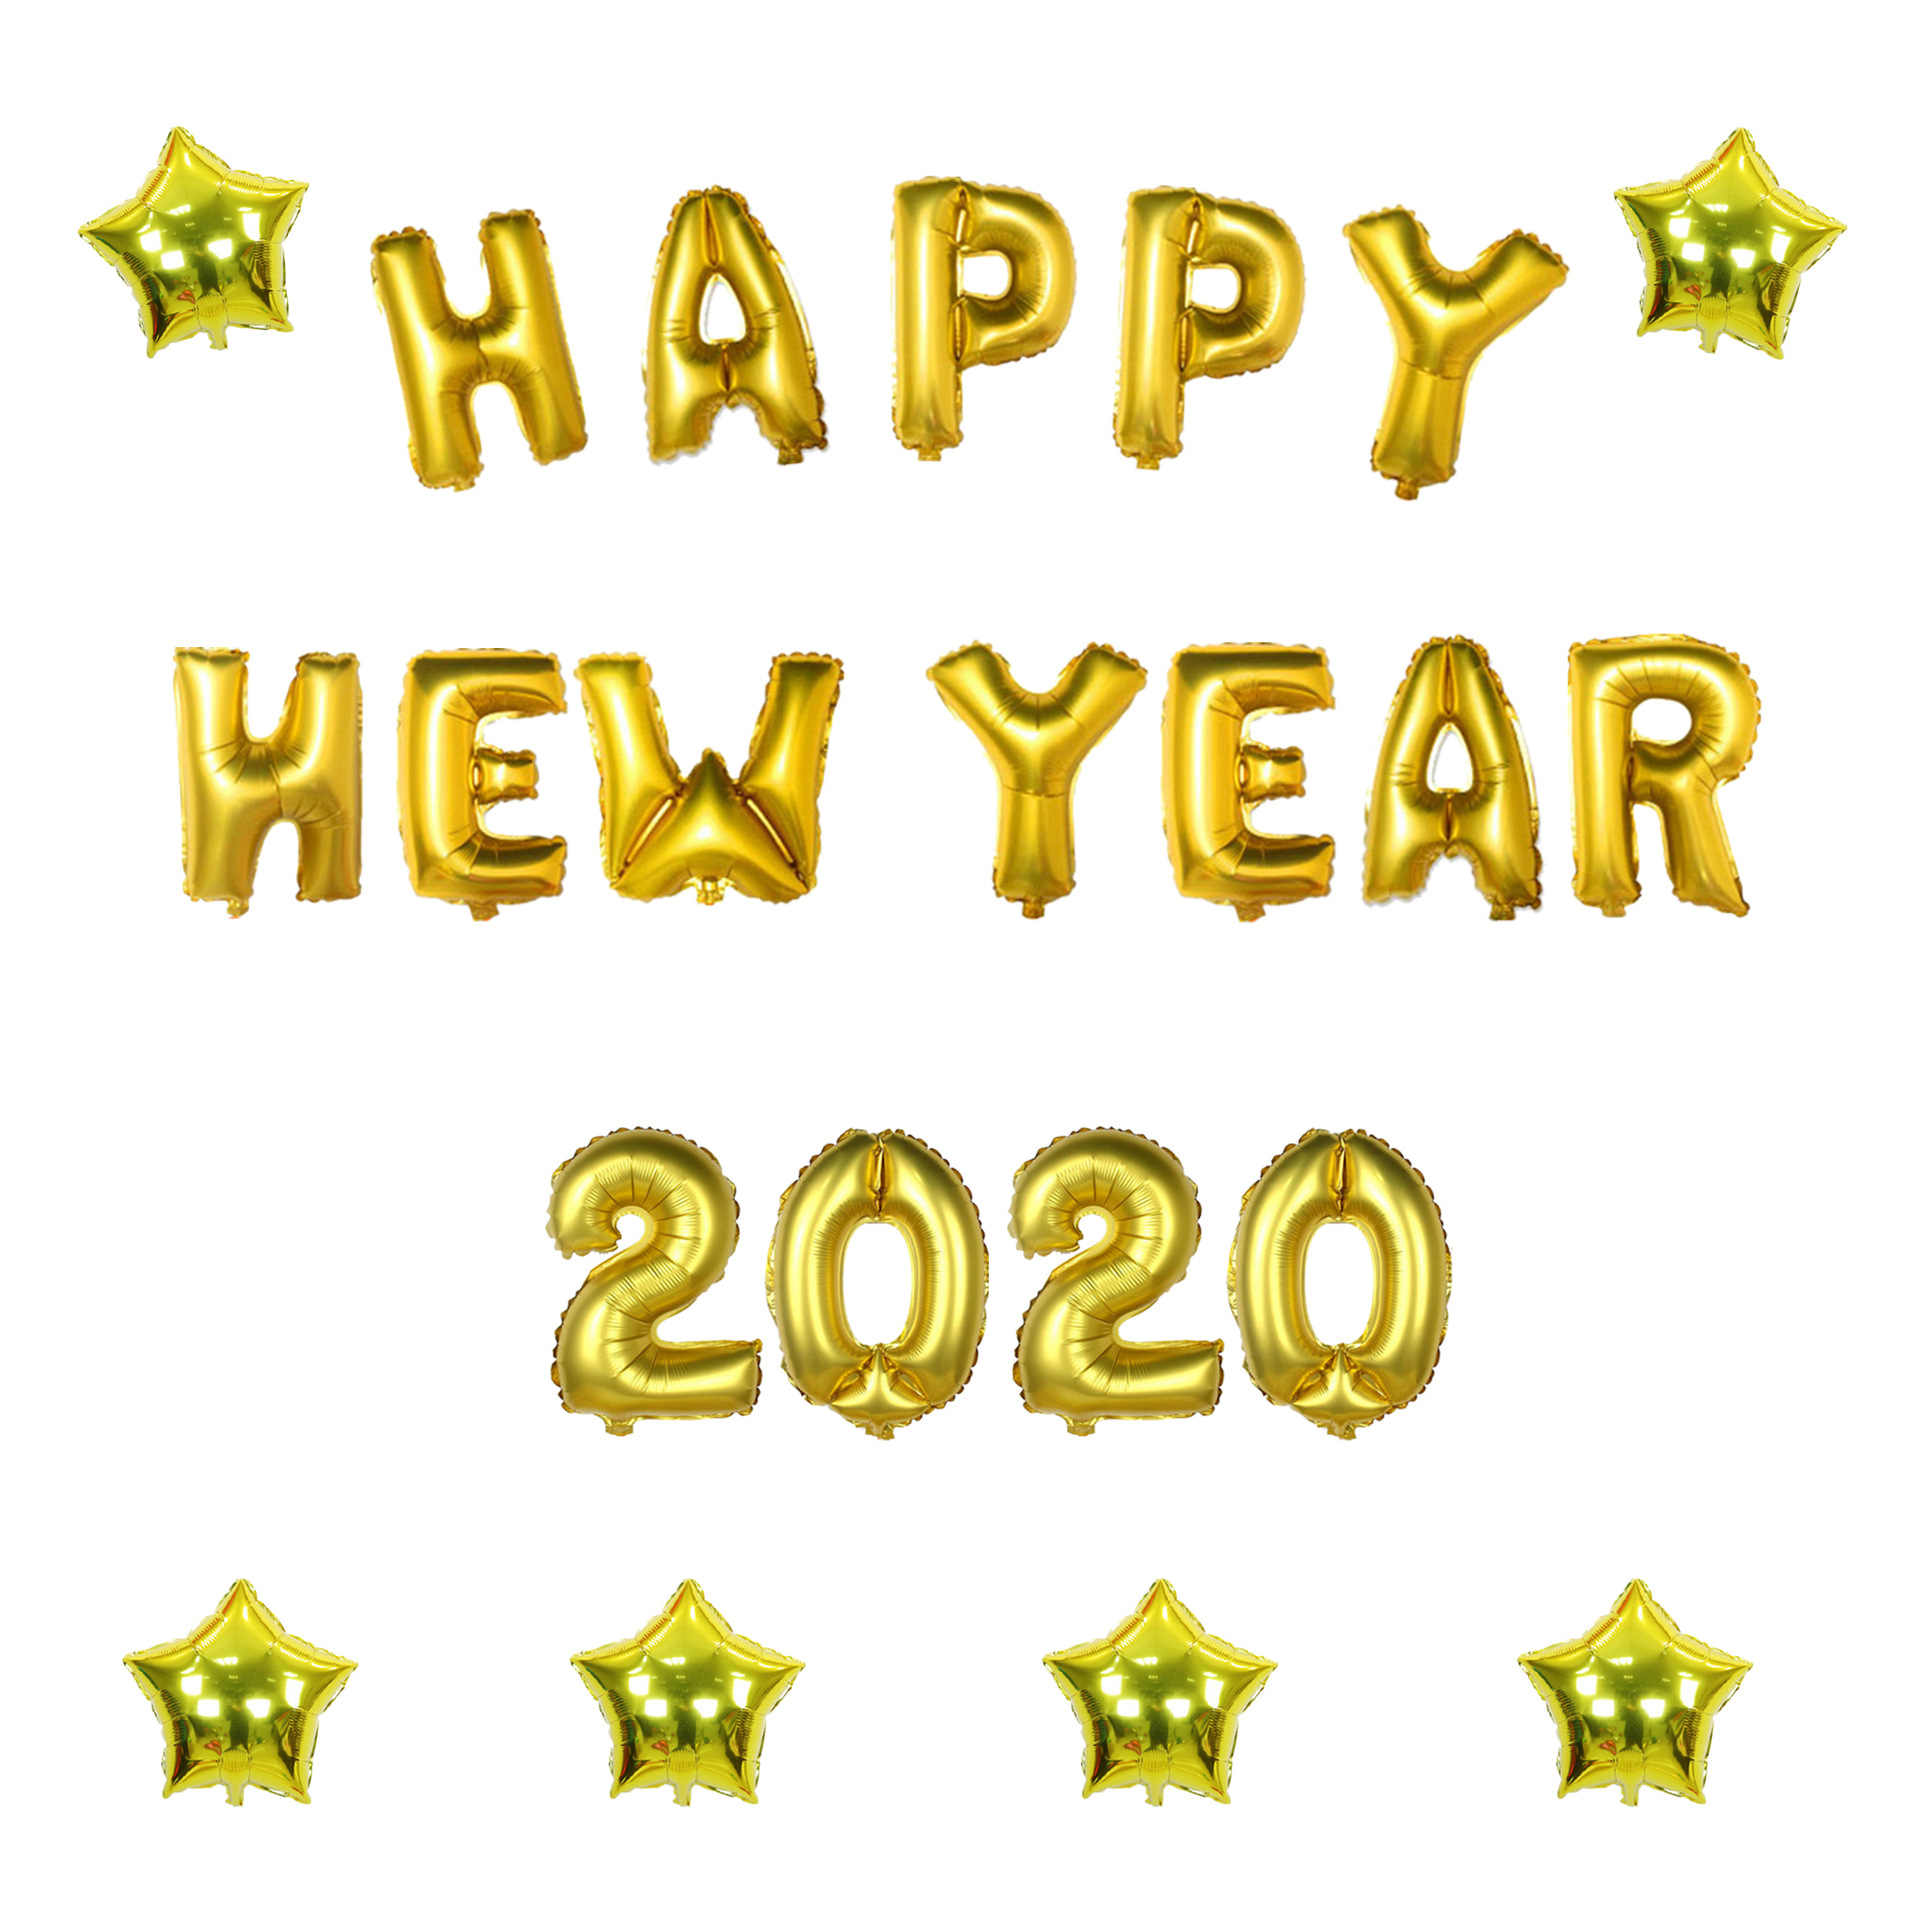 2020 Number Foil Balloon Black Gold Digit Helium Baloons Happy New Year Christmas Party Decor Globos DIY Home Ornaments Decor